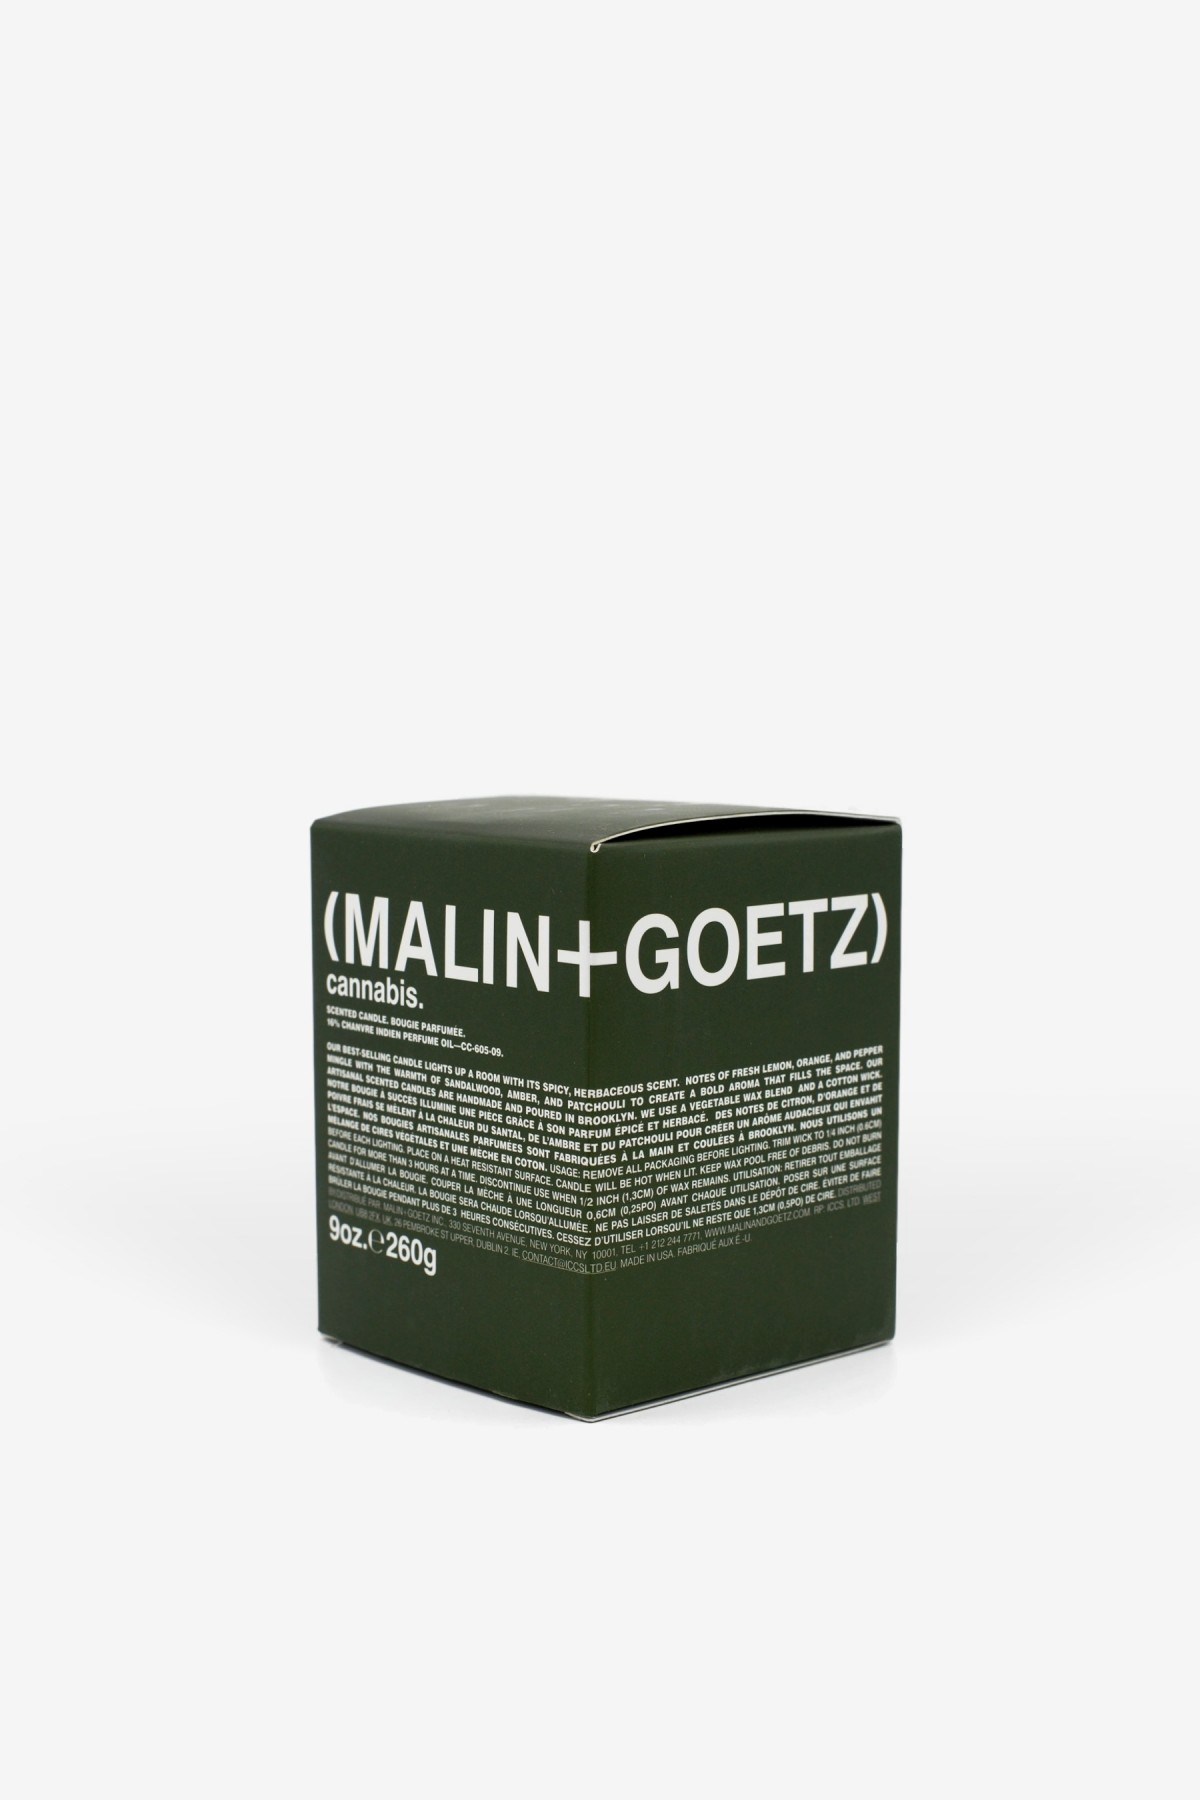 Malin+Goetz Cannabis Candle 260g in